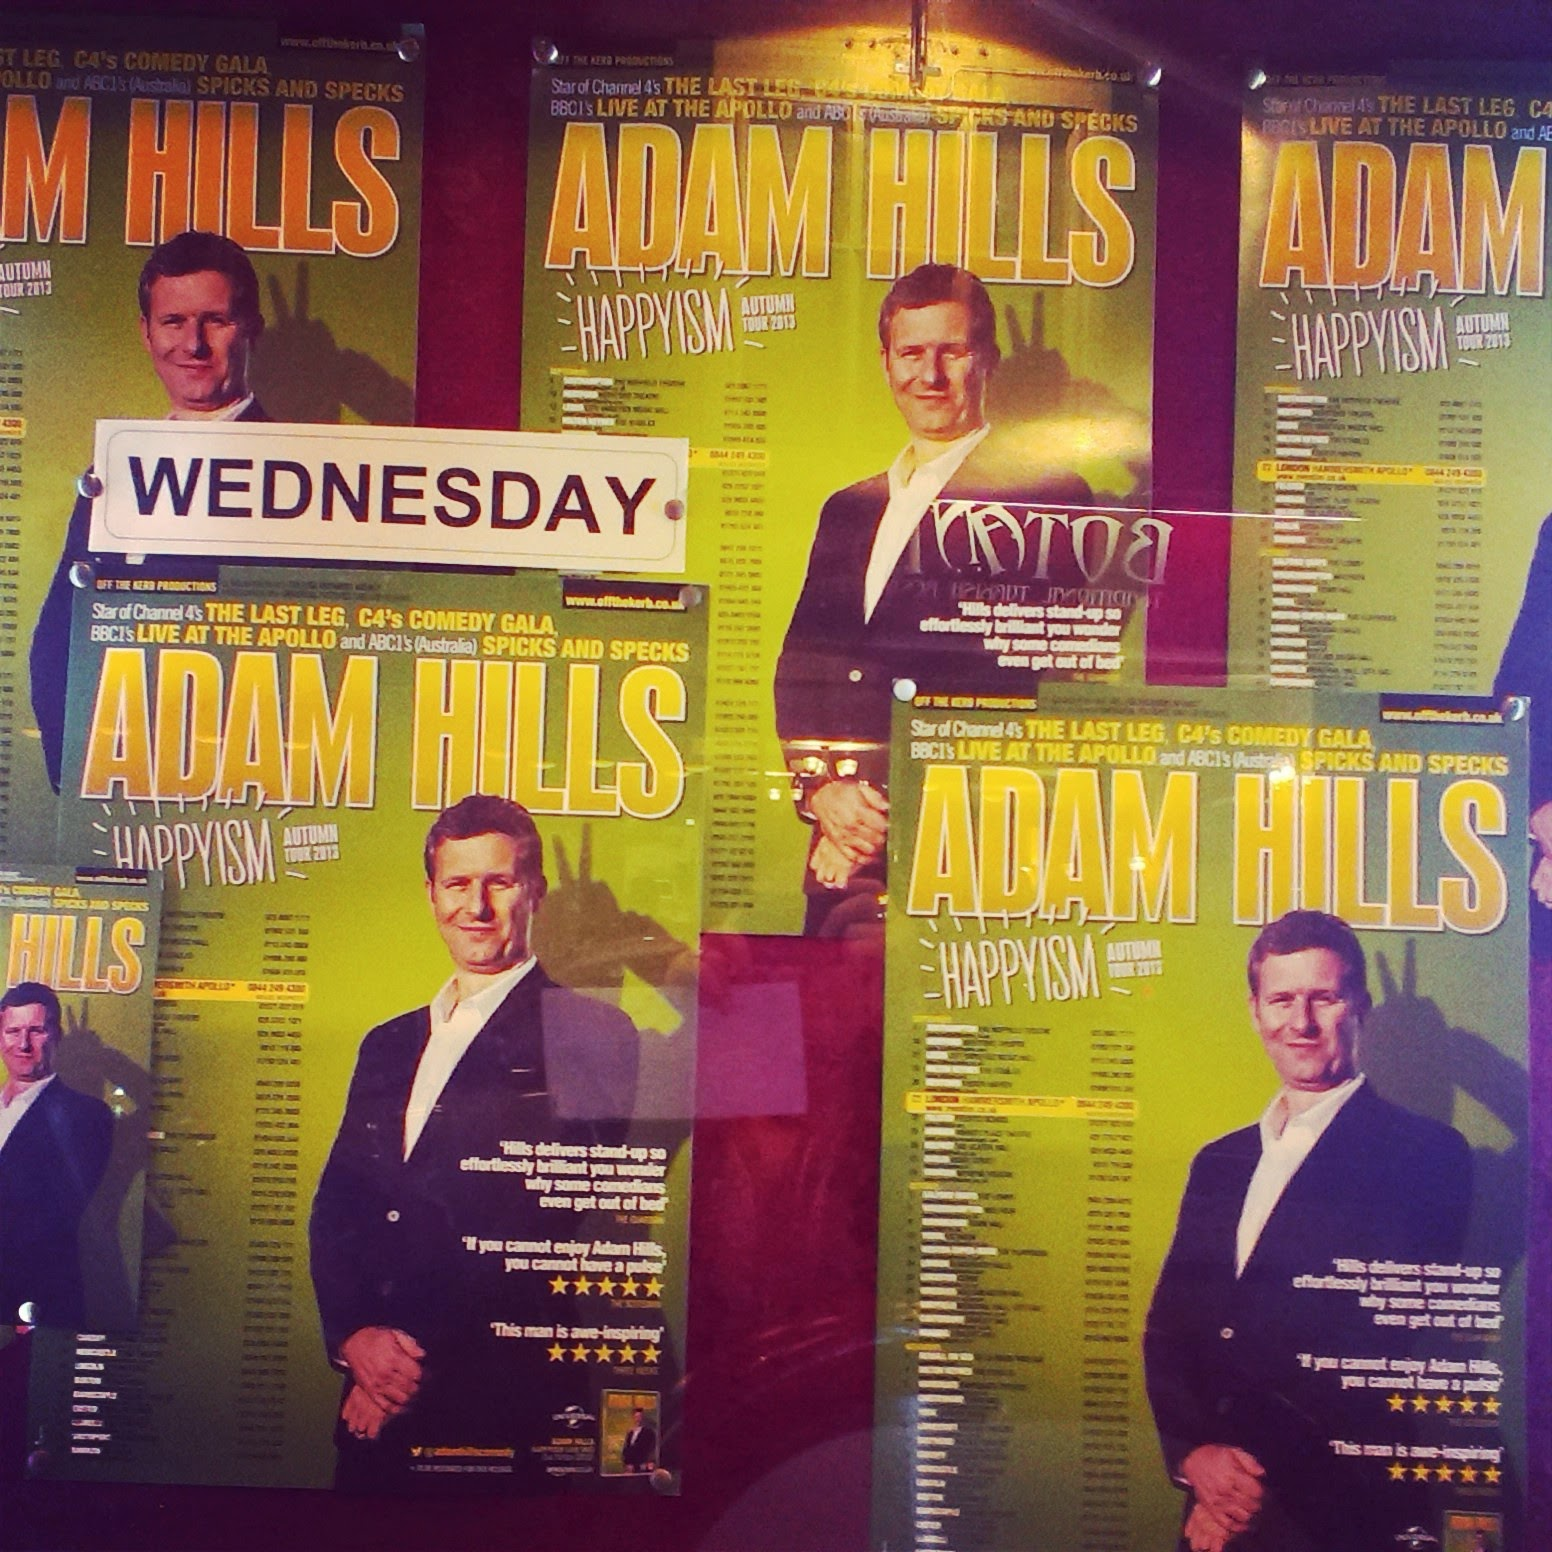 Adam Hills Happyism Tour Posters